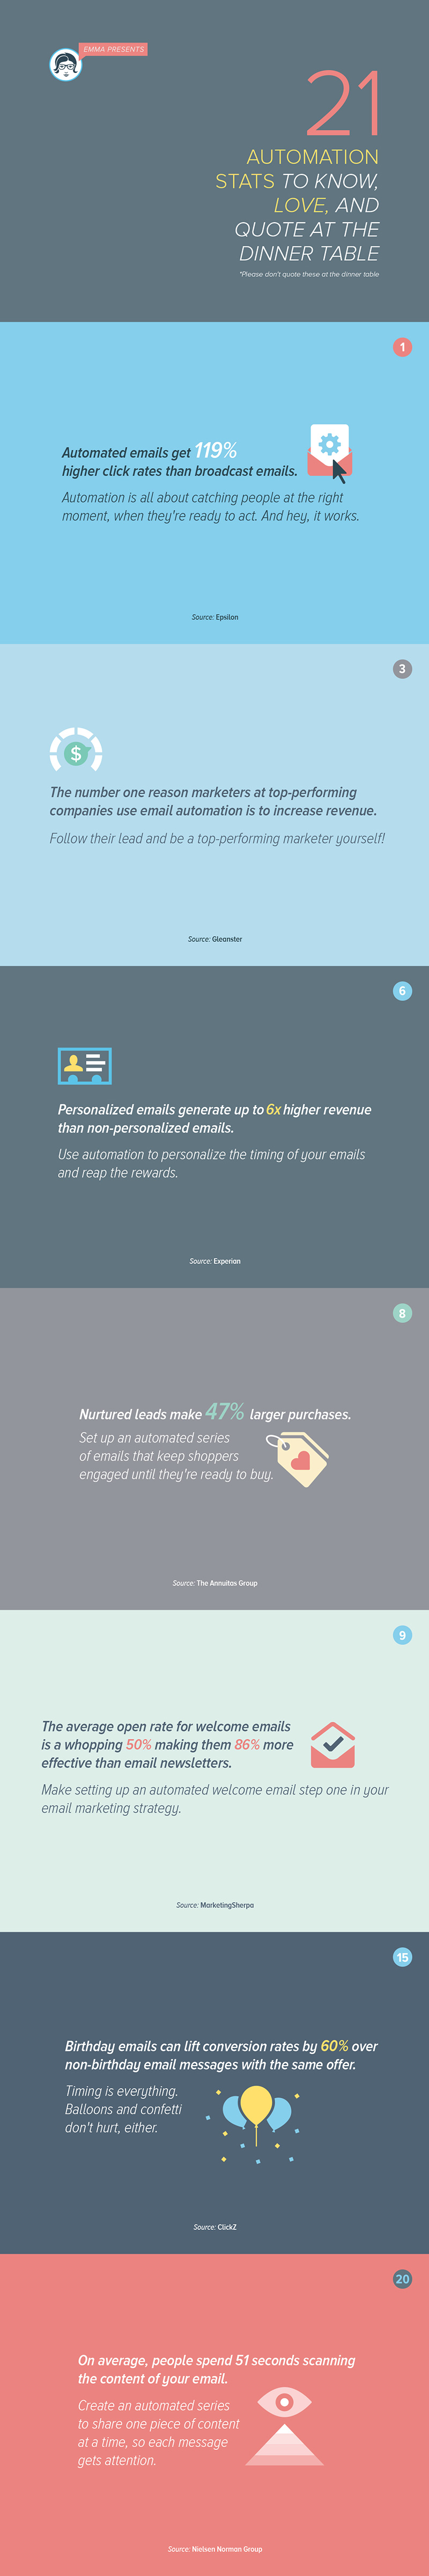 21 Email Automation stats